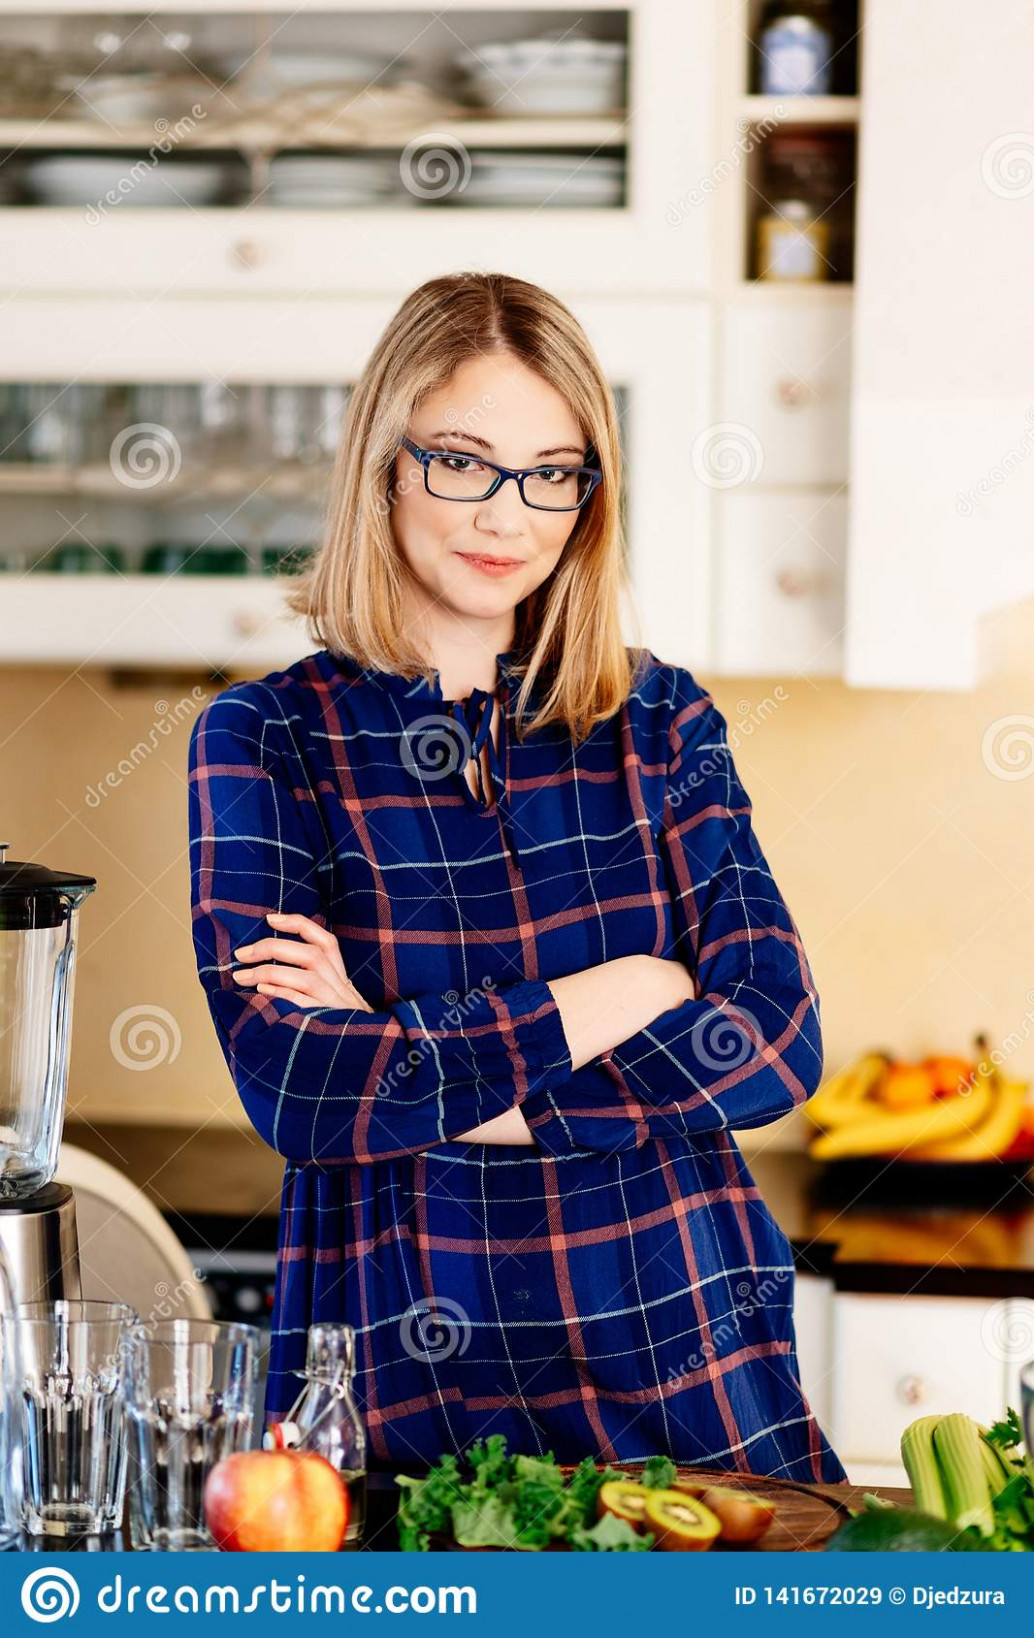 Vegetarian Pregnant Woman In Kitchen Stock Image - Image Of ..